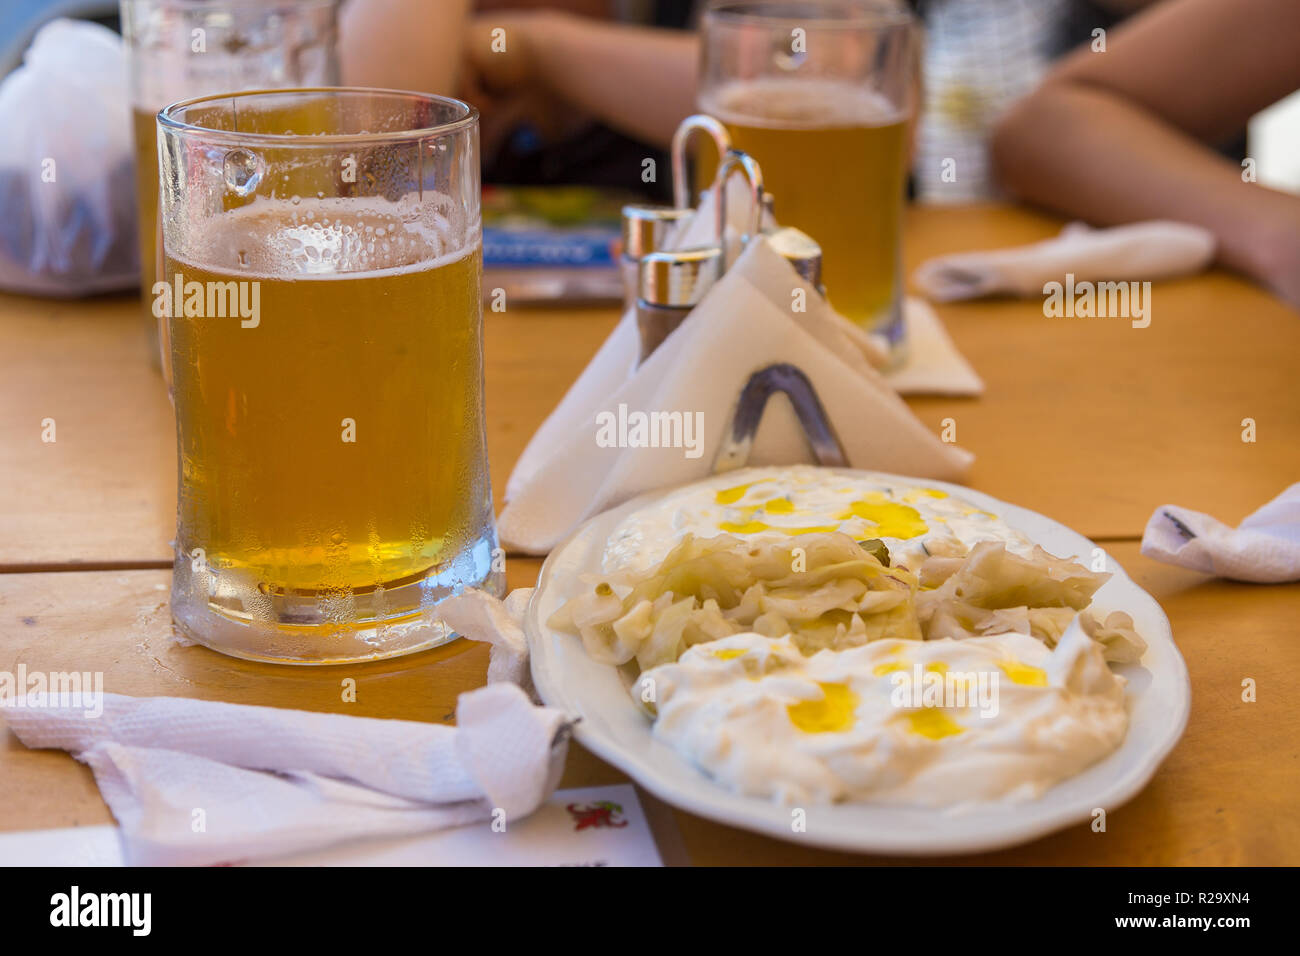 Traditional meal in Albania, cabbage with yoghurt. Beer mug in the background, Tirana, Albania. - Stock Image